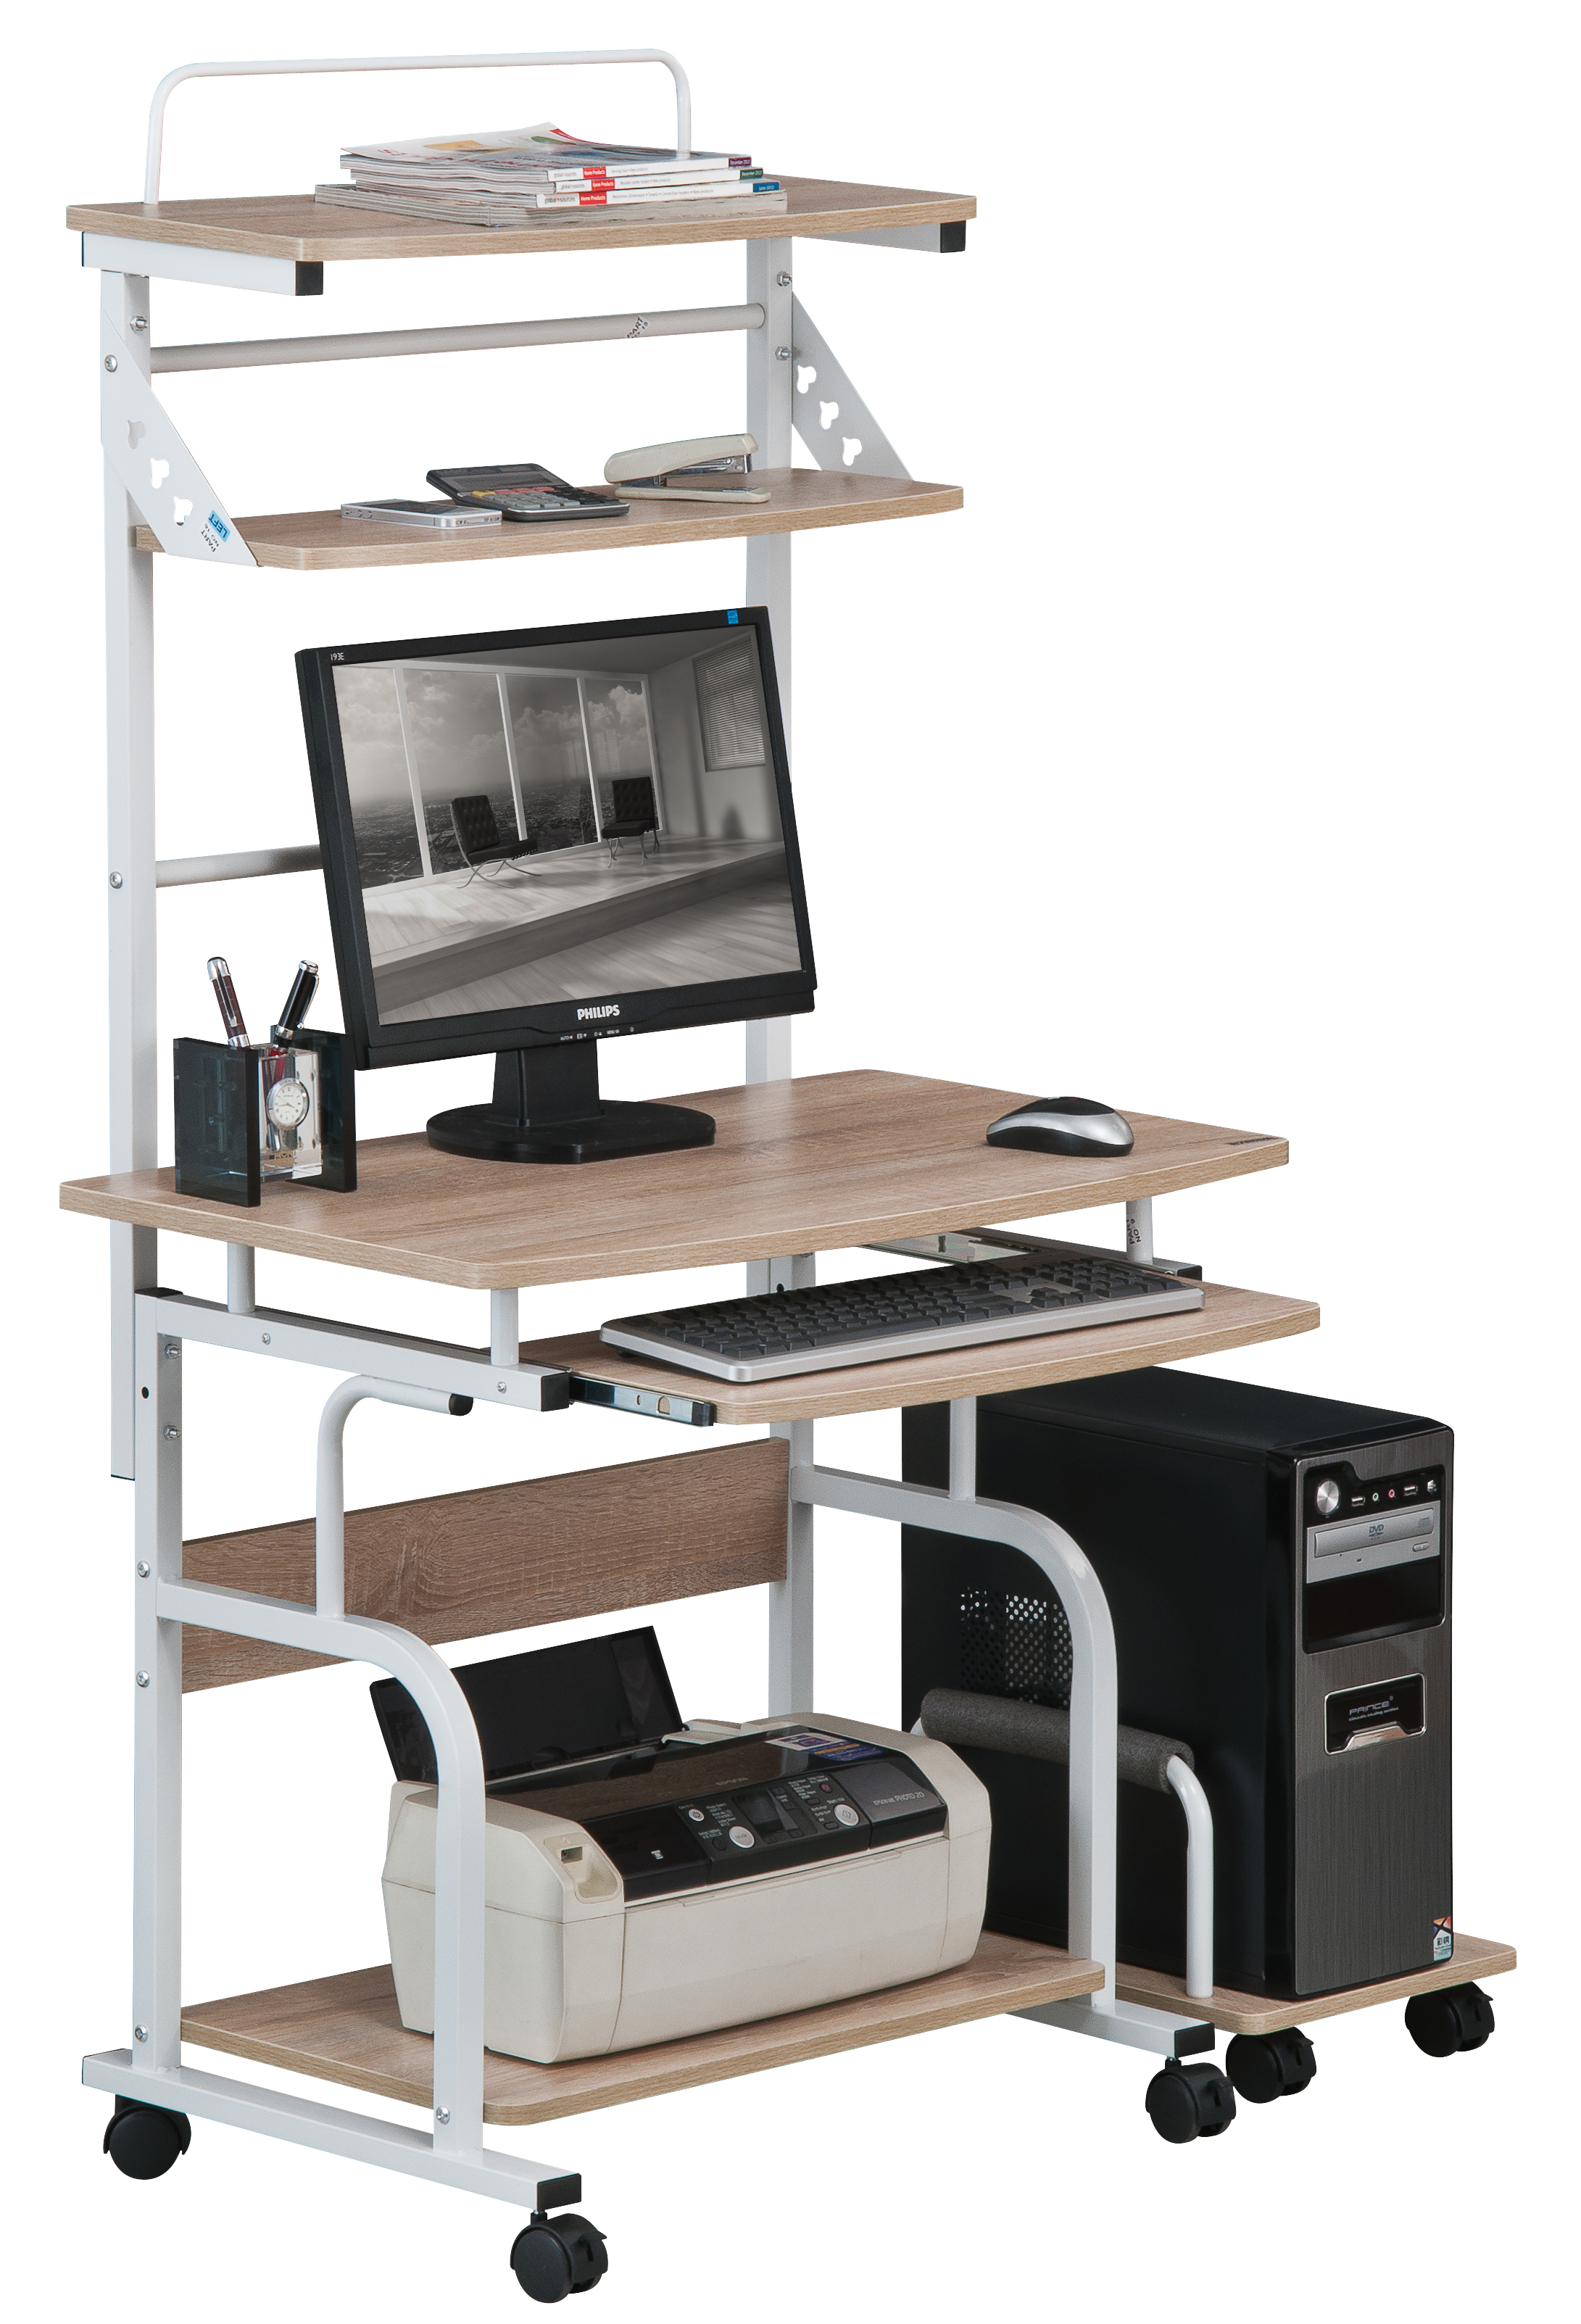 Sixbros computer desk workstation work table different for Furniture y equipment